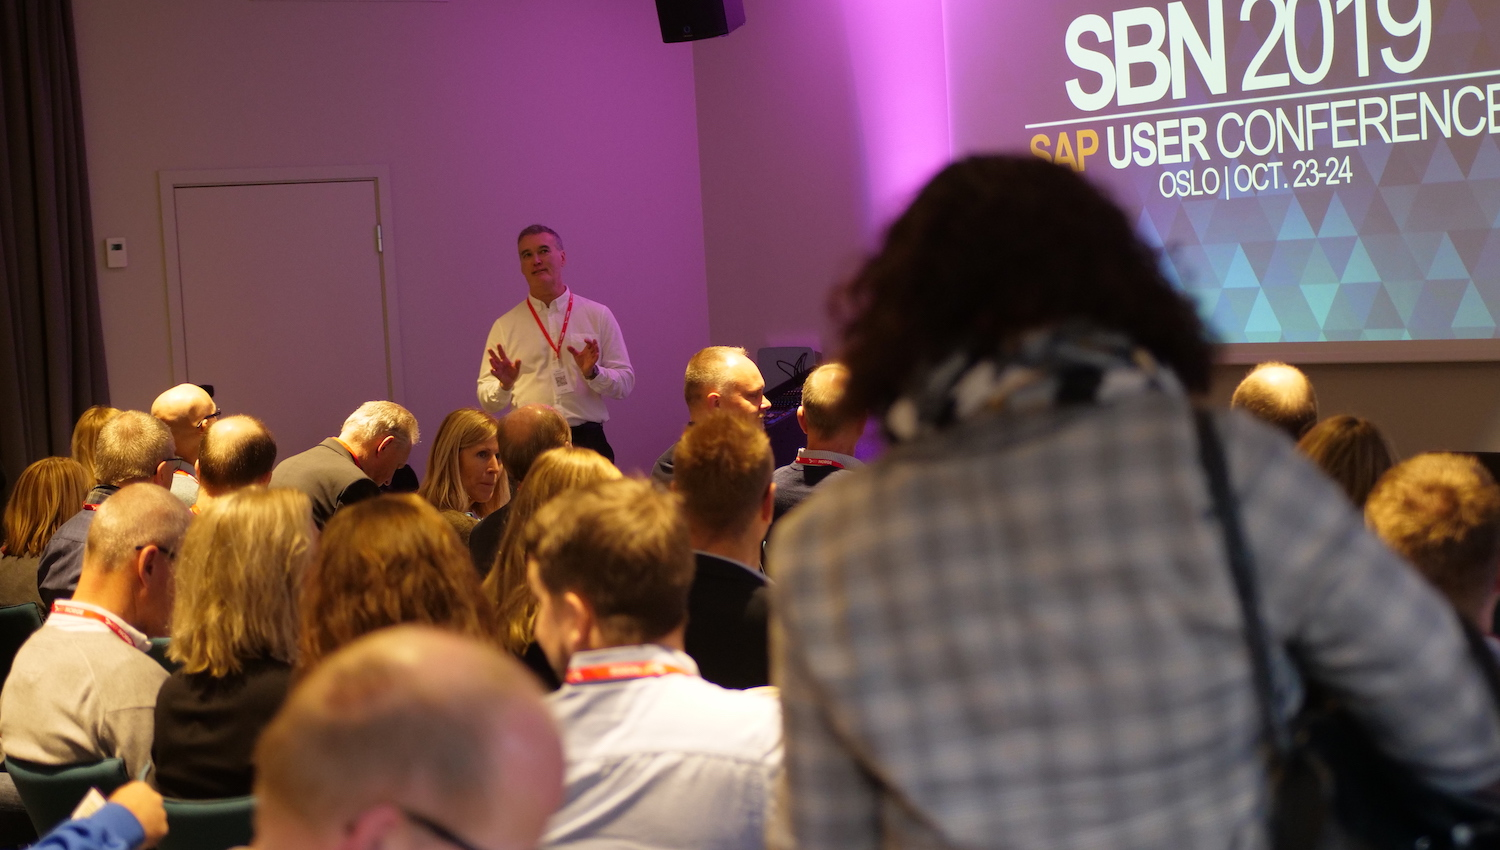 SBN Conference 2019